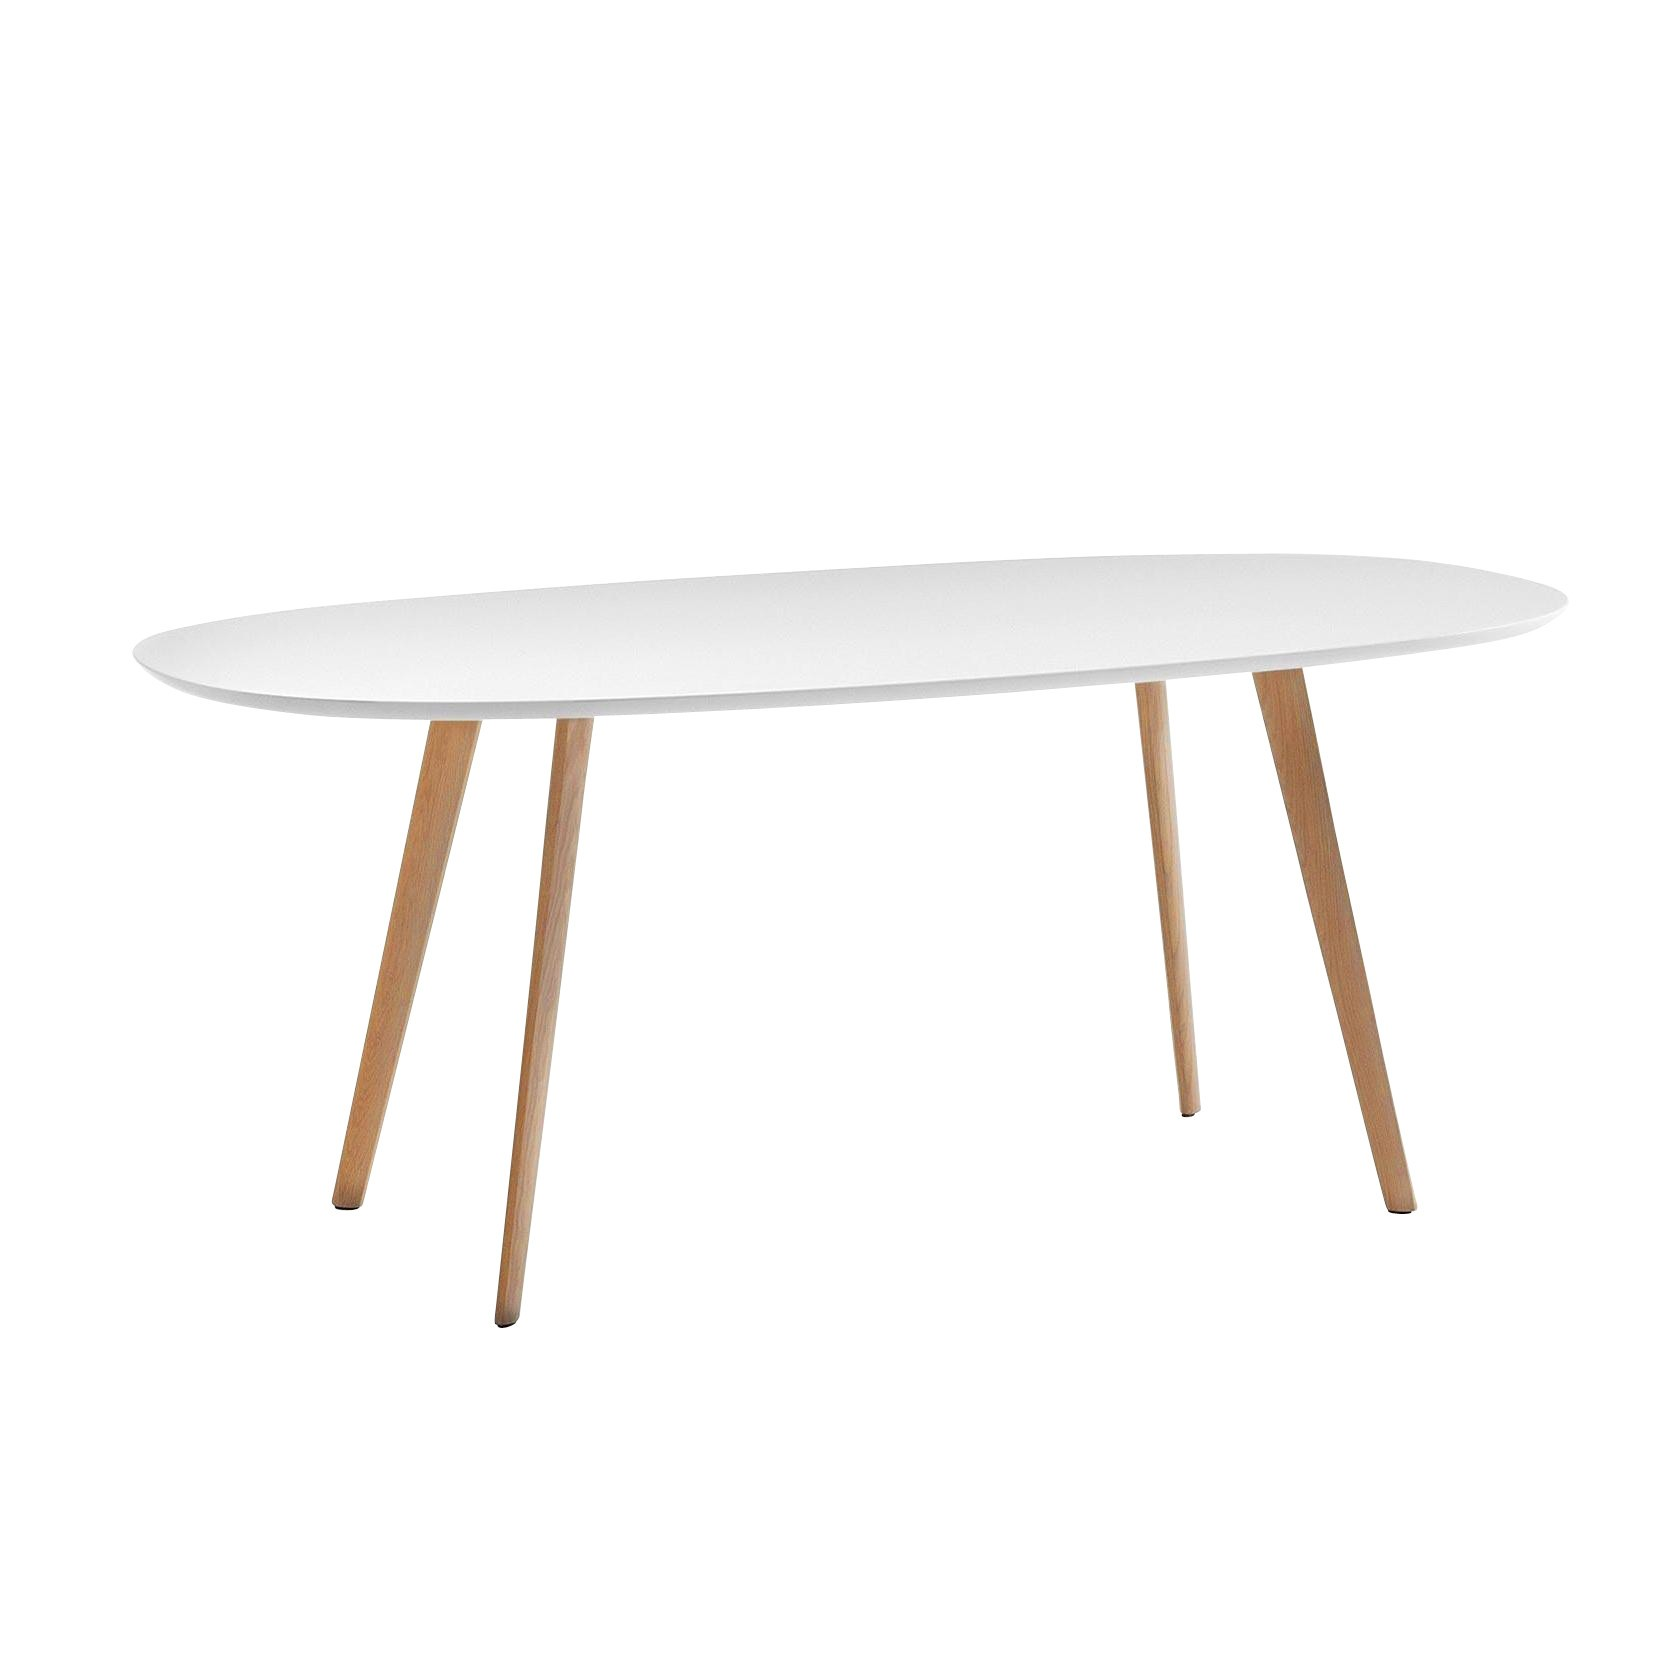 Arper   Gher Dining Table   White/frame Natur/with Oval MDF Table Top